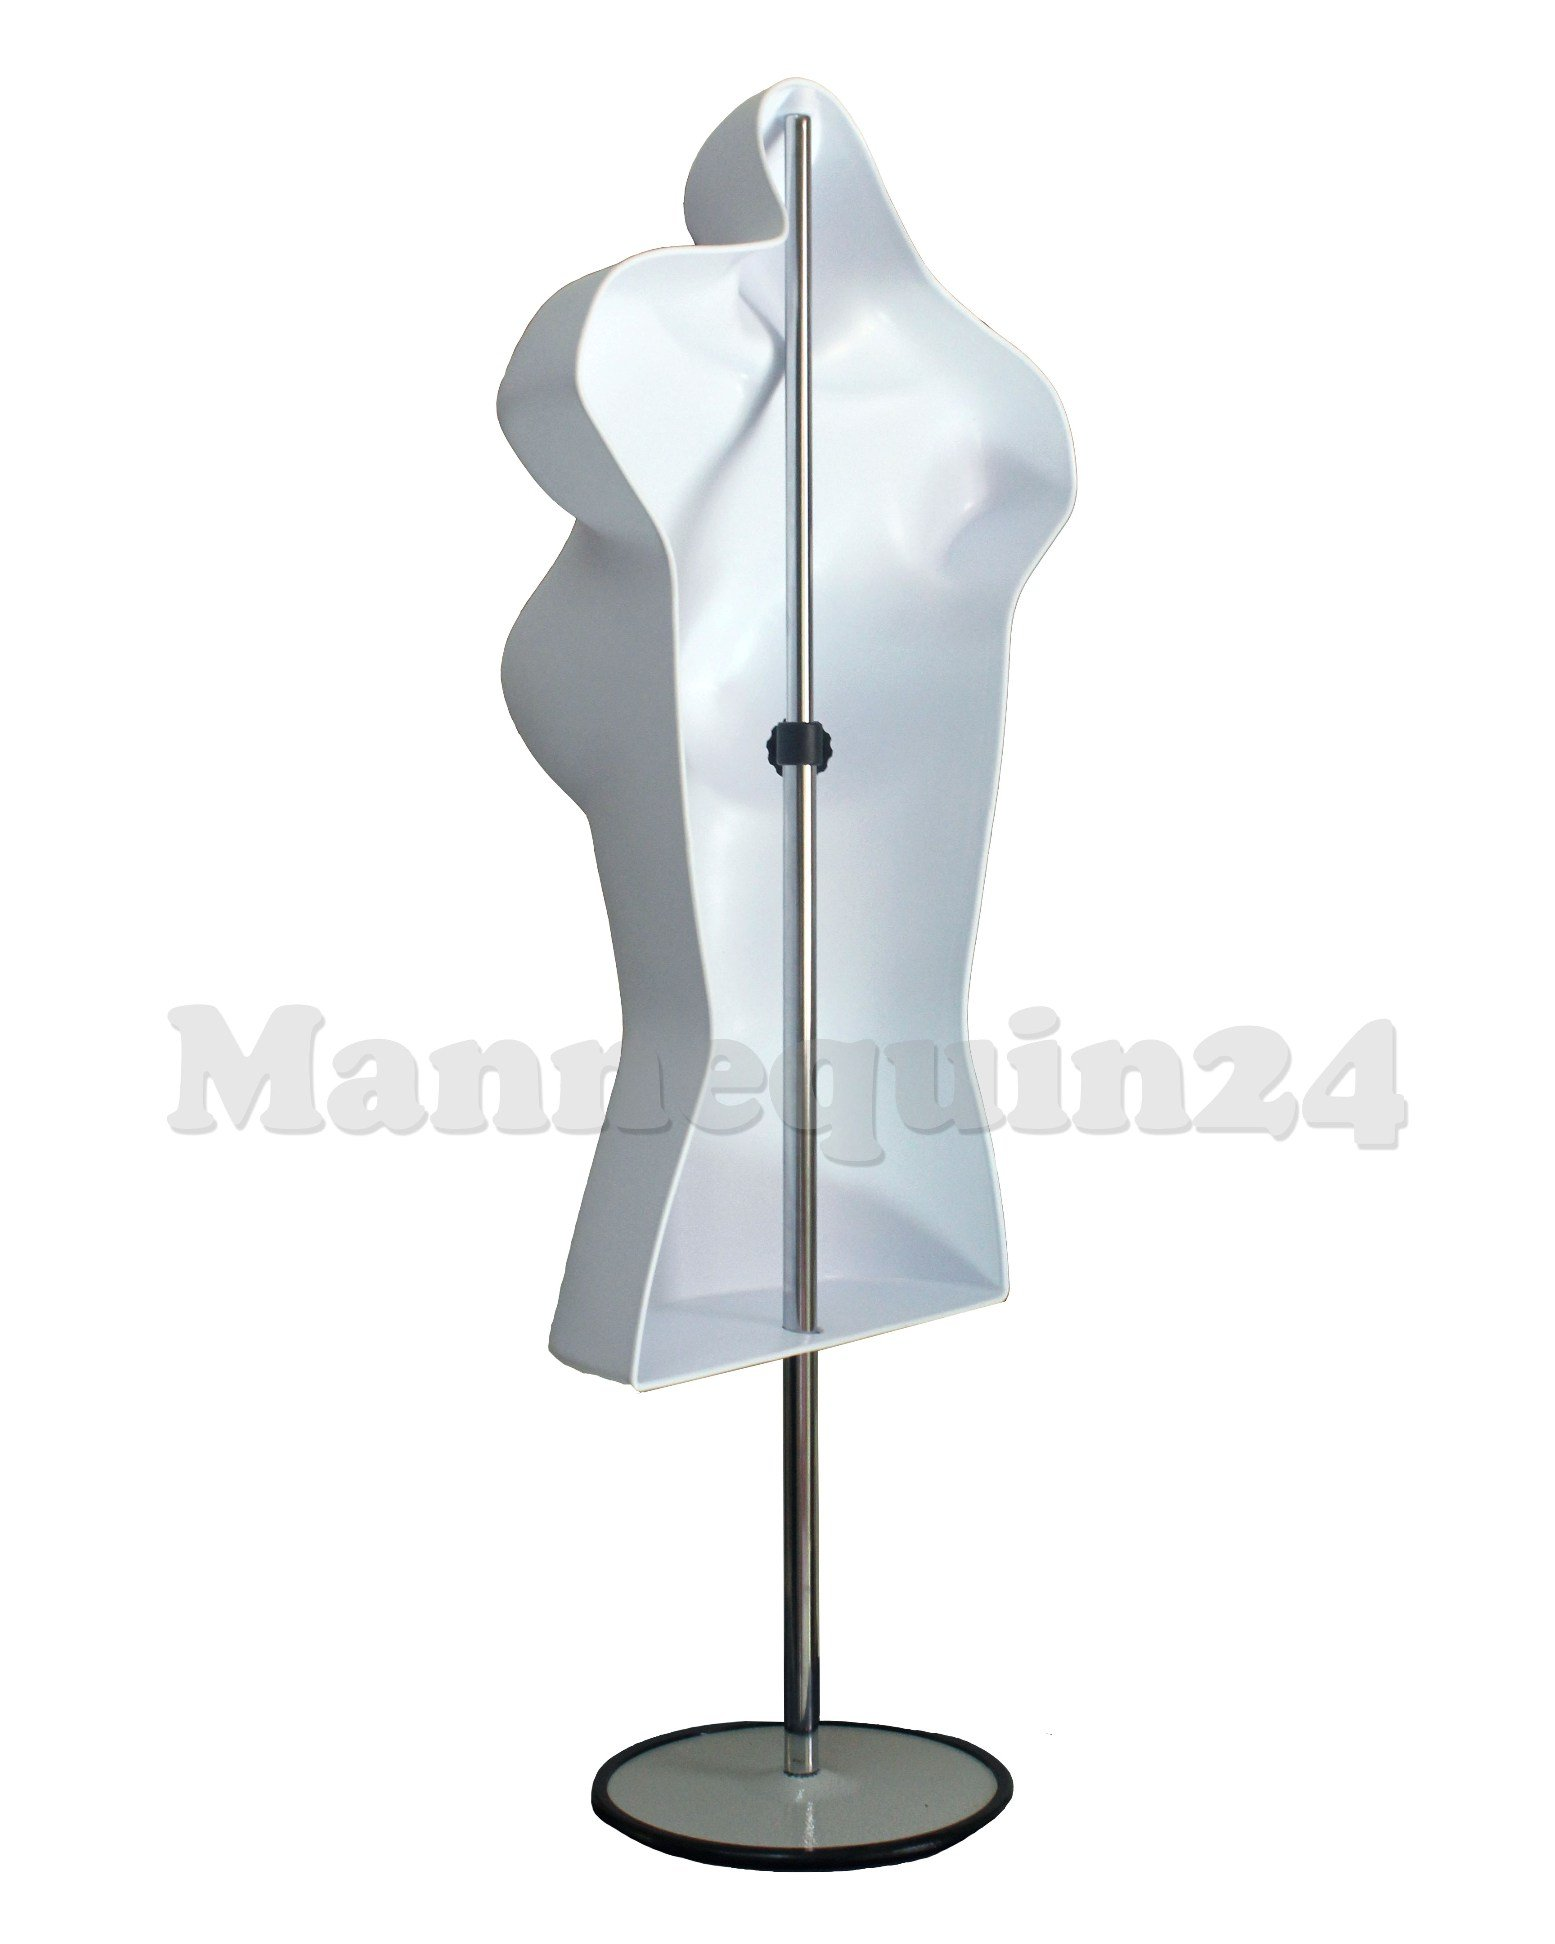 DisplayTown Mannequin Forms Male and Female Torso with Metal Stand and Hook for Hanging Pants, Waist Long, White by DisplayTown (Image #6)